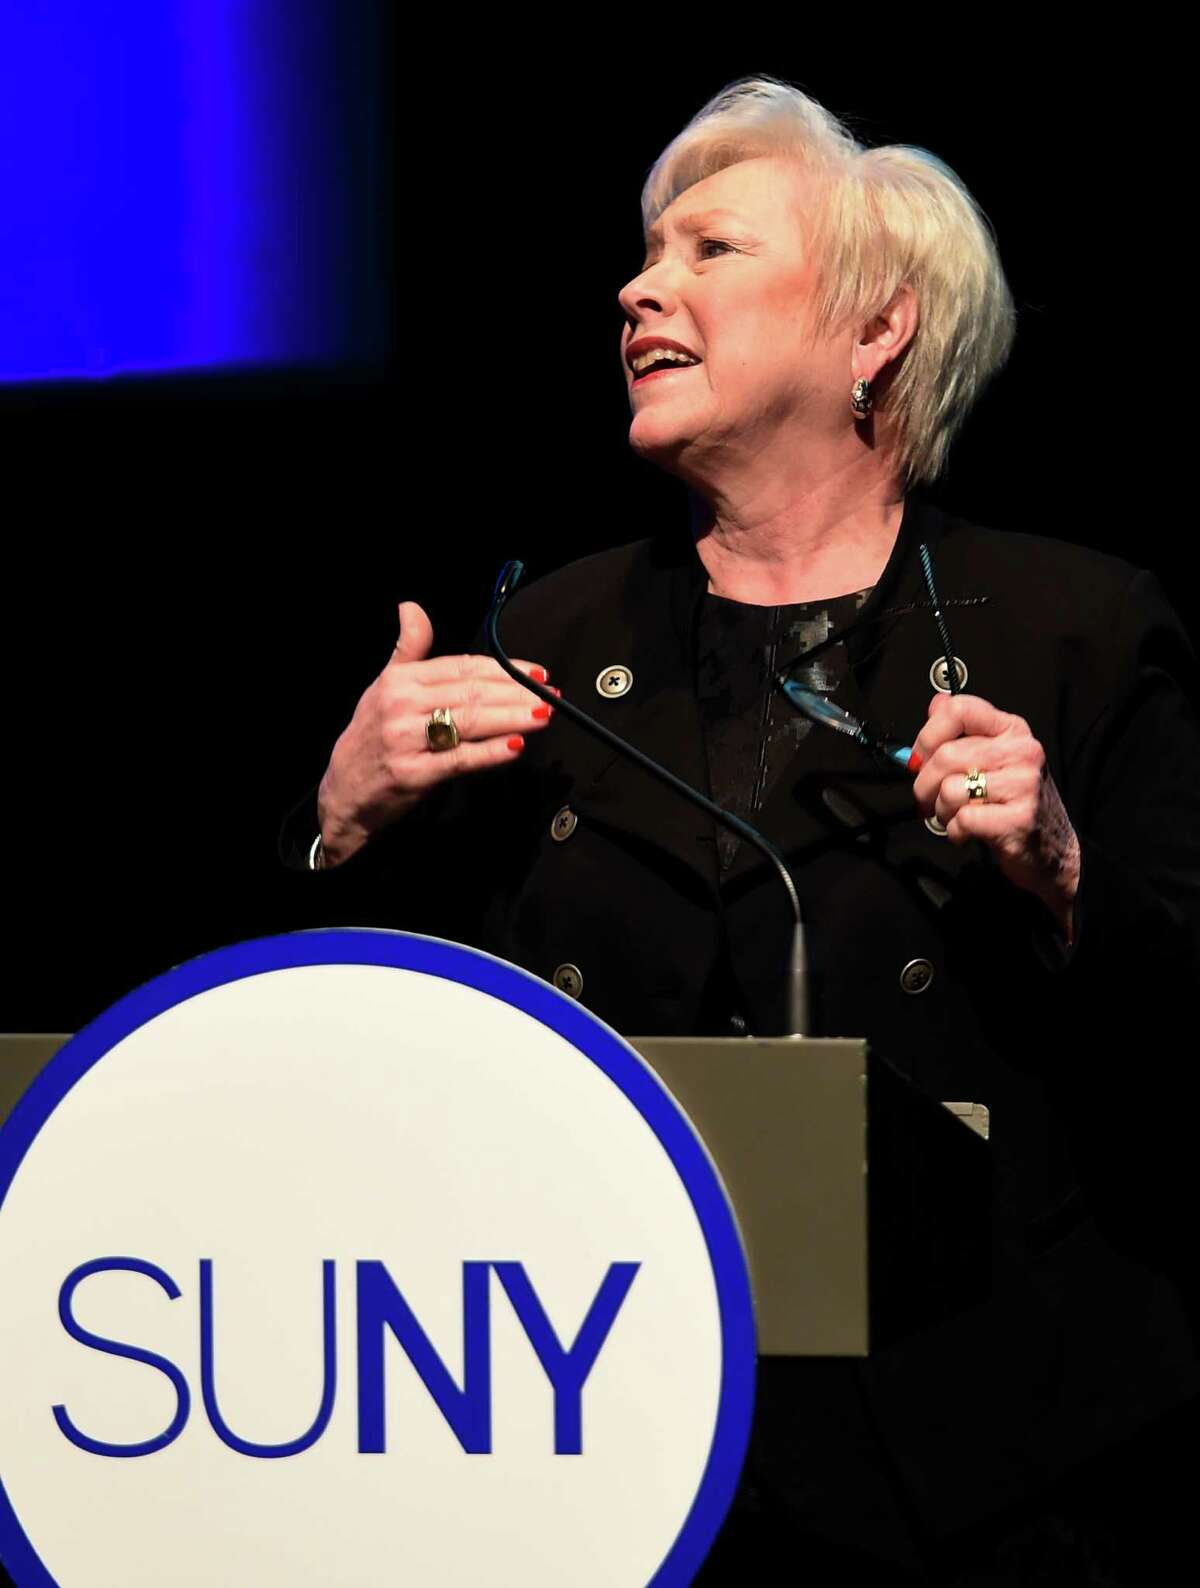 State University of New York System Chancellor Nancy Zimpher gives her State of the University address at the Empire State Plaza Friday Jan. 23, 2015 in Albany, N.Y. (Skip Dickstein/Times Union)